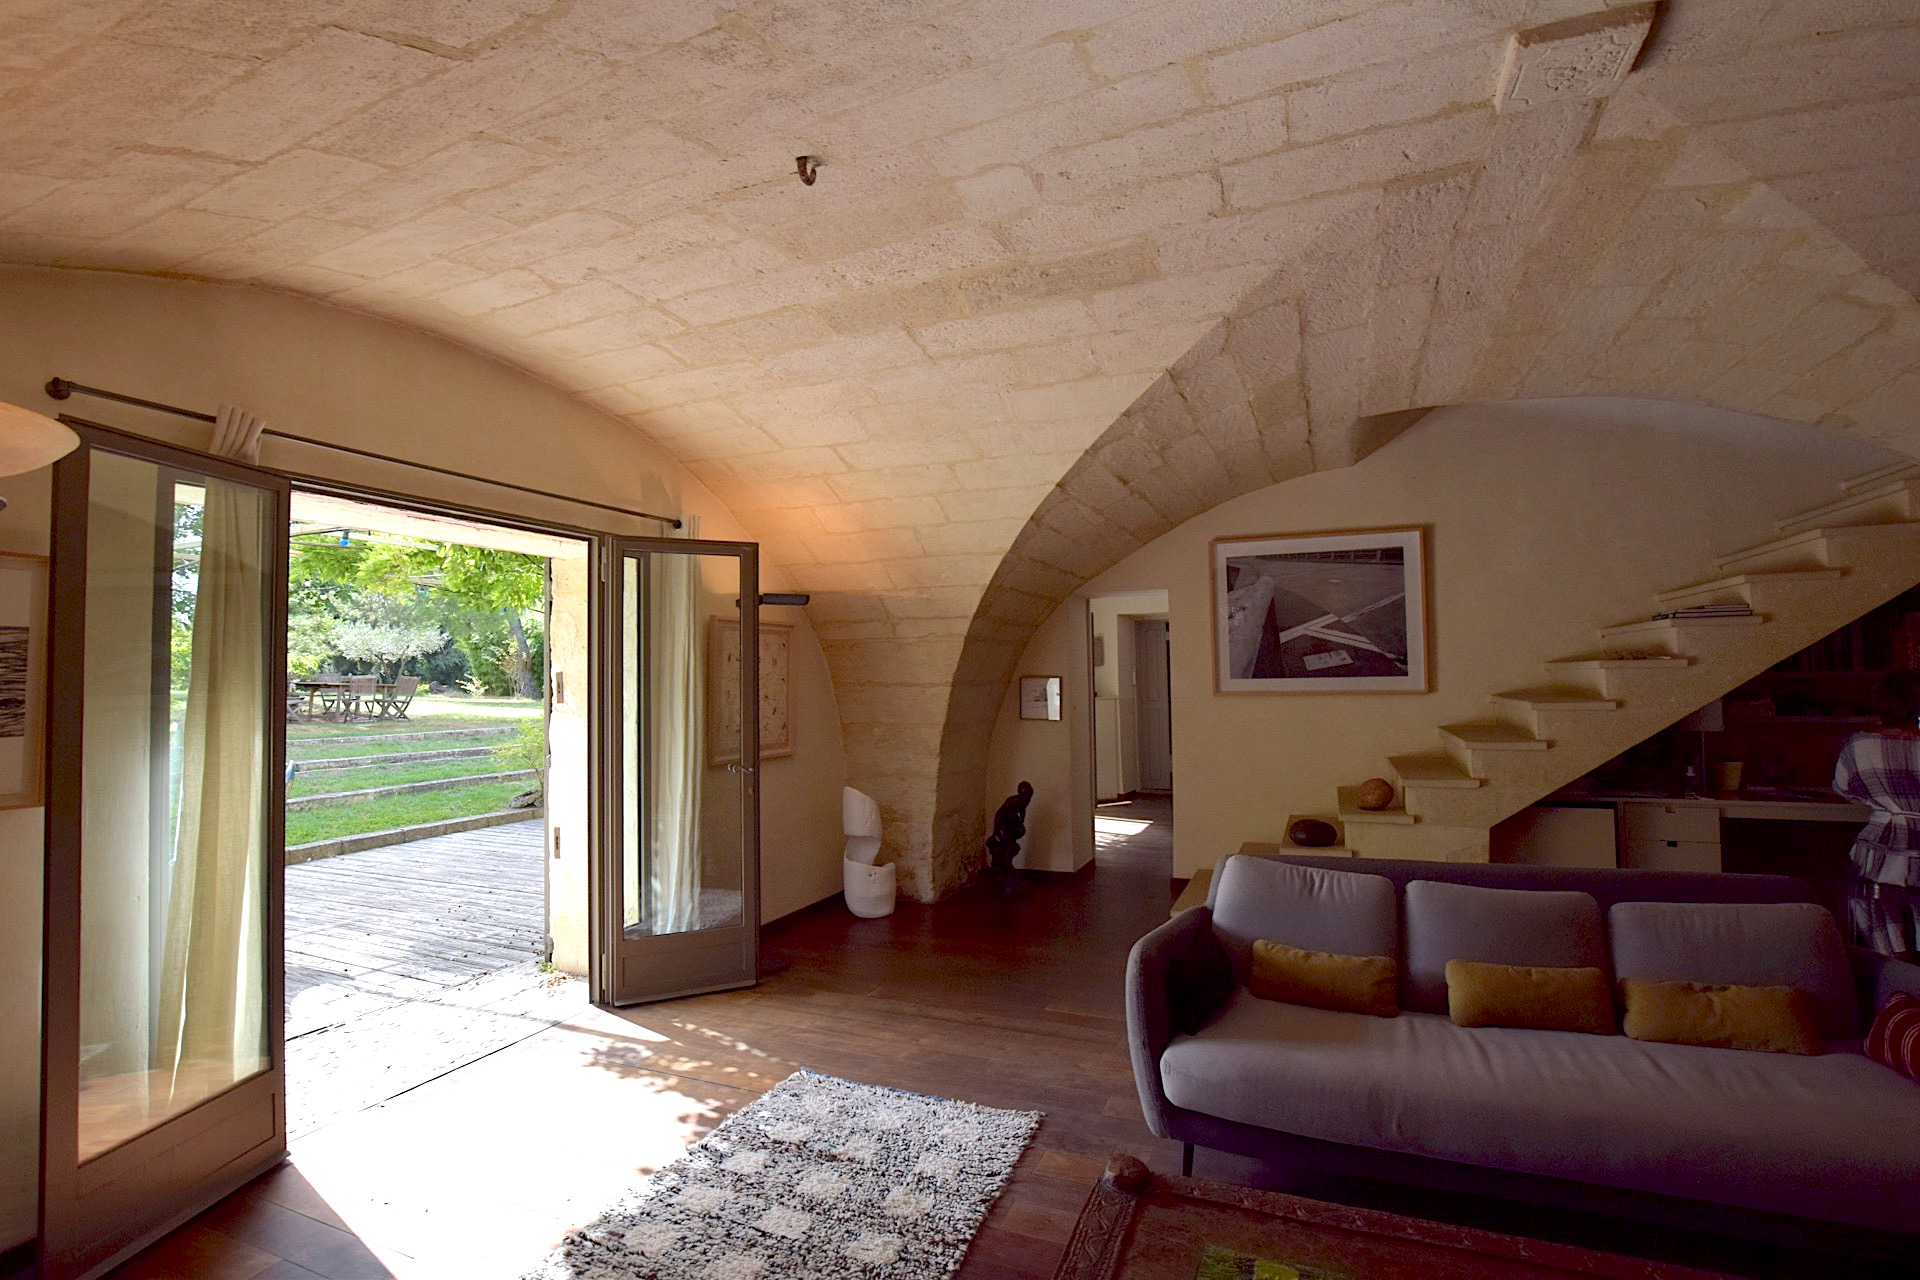 Uzès, close to centre town, stone Mas 260m2 on beautiful enclosed grounds with pool